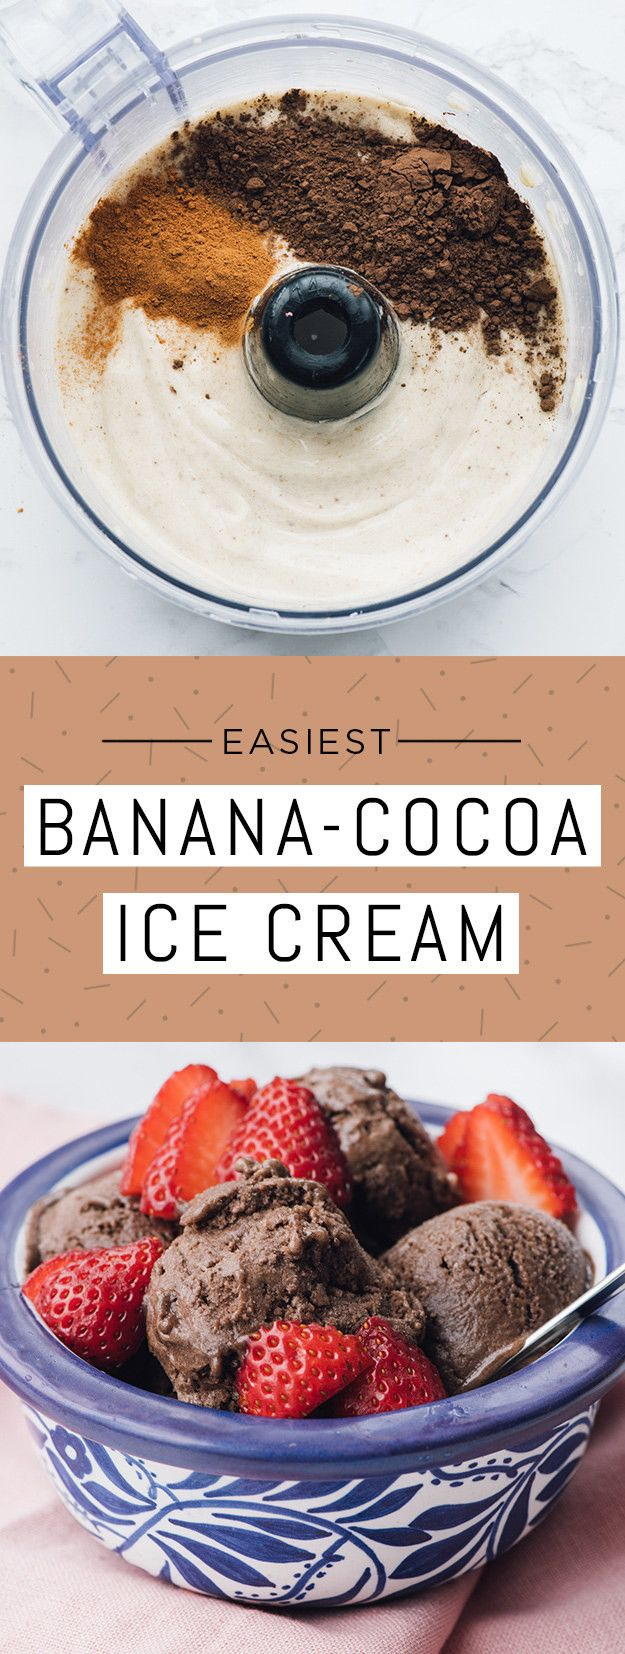 Ingredients: 4 bananas; 1–2 tablespoons unsweetened cocoa powder, depending on your taste; ¼ teaspoon ground cinnamon; strawberries to garnish. (Optional: This also tastes great with a small spoonful of peanut butter mixed into the batter.)To make: Slice bananas and place in an airtight container. Freeze for at least two hours, preferably overnight. Place frozen banana slices in a food processor and blend until they reach the consistency of soft serve, about 4 minutes. Add cocoa powder and…